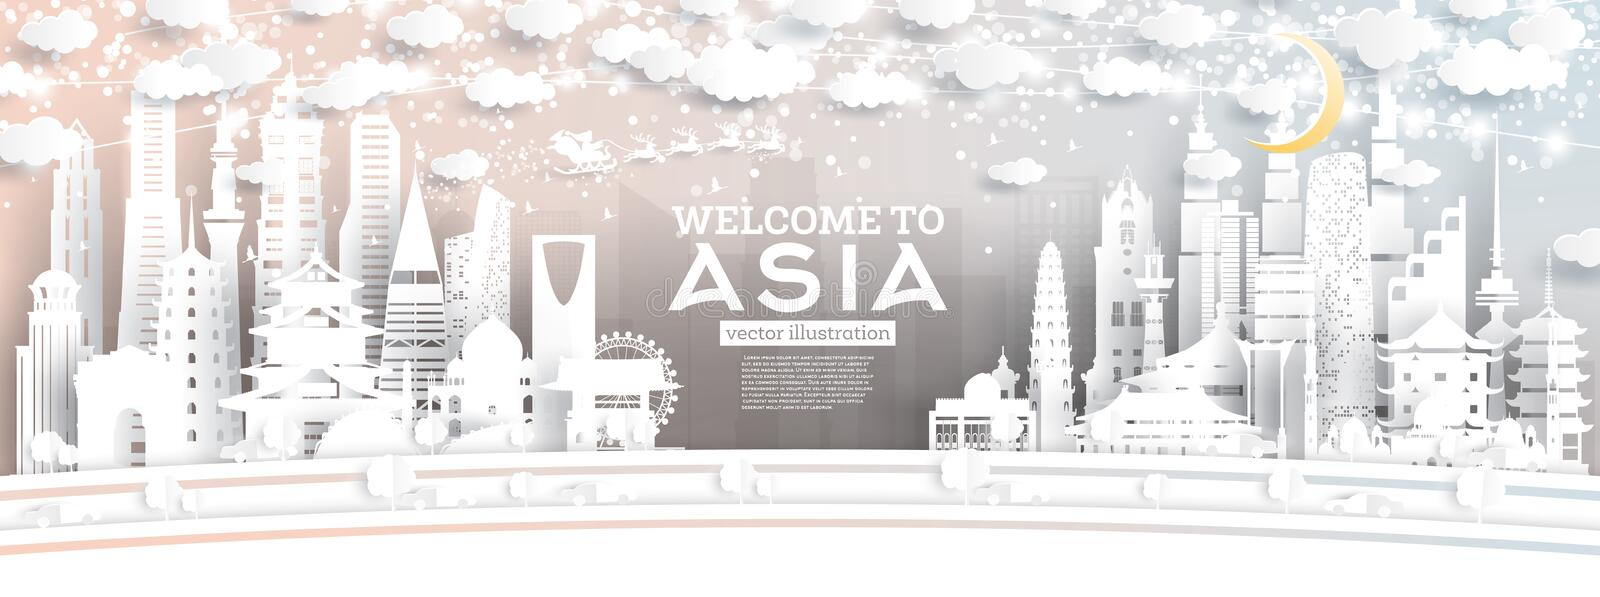 Asia City Skyline in Paper Cut Style with Snowflakes, Moon and Neon Garland royalty free illustration